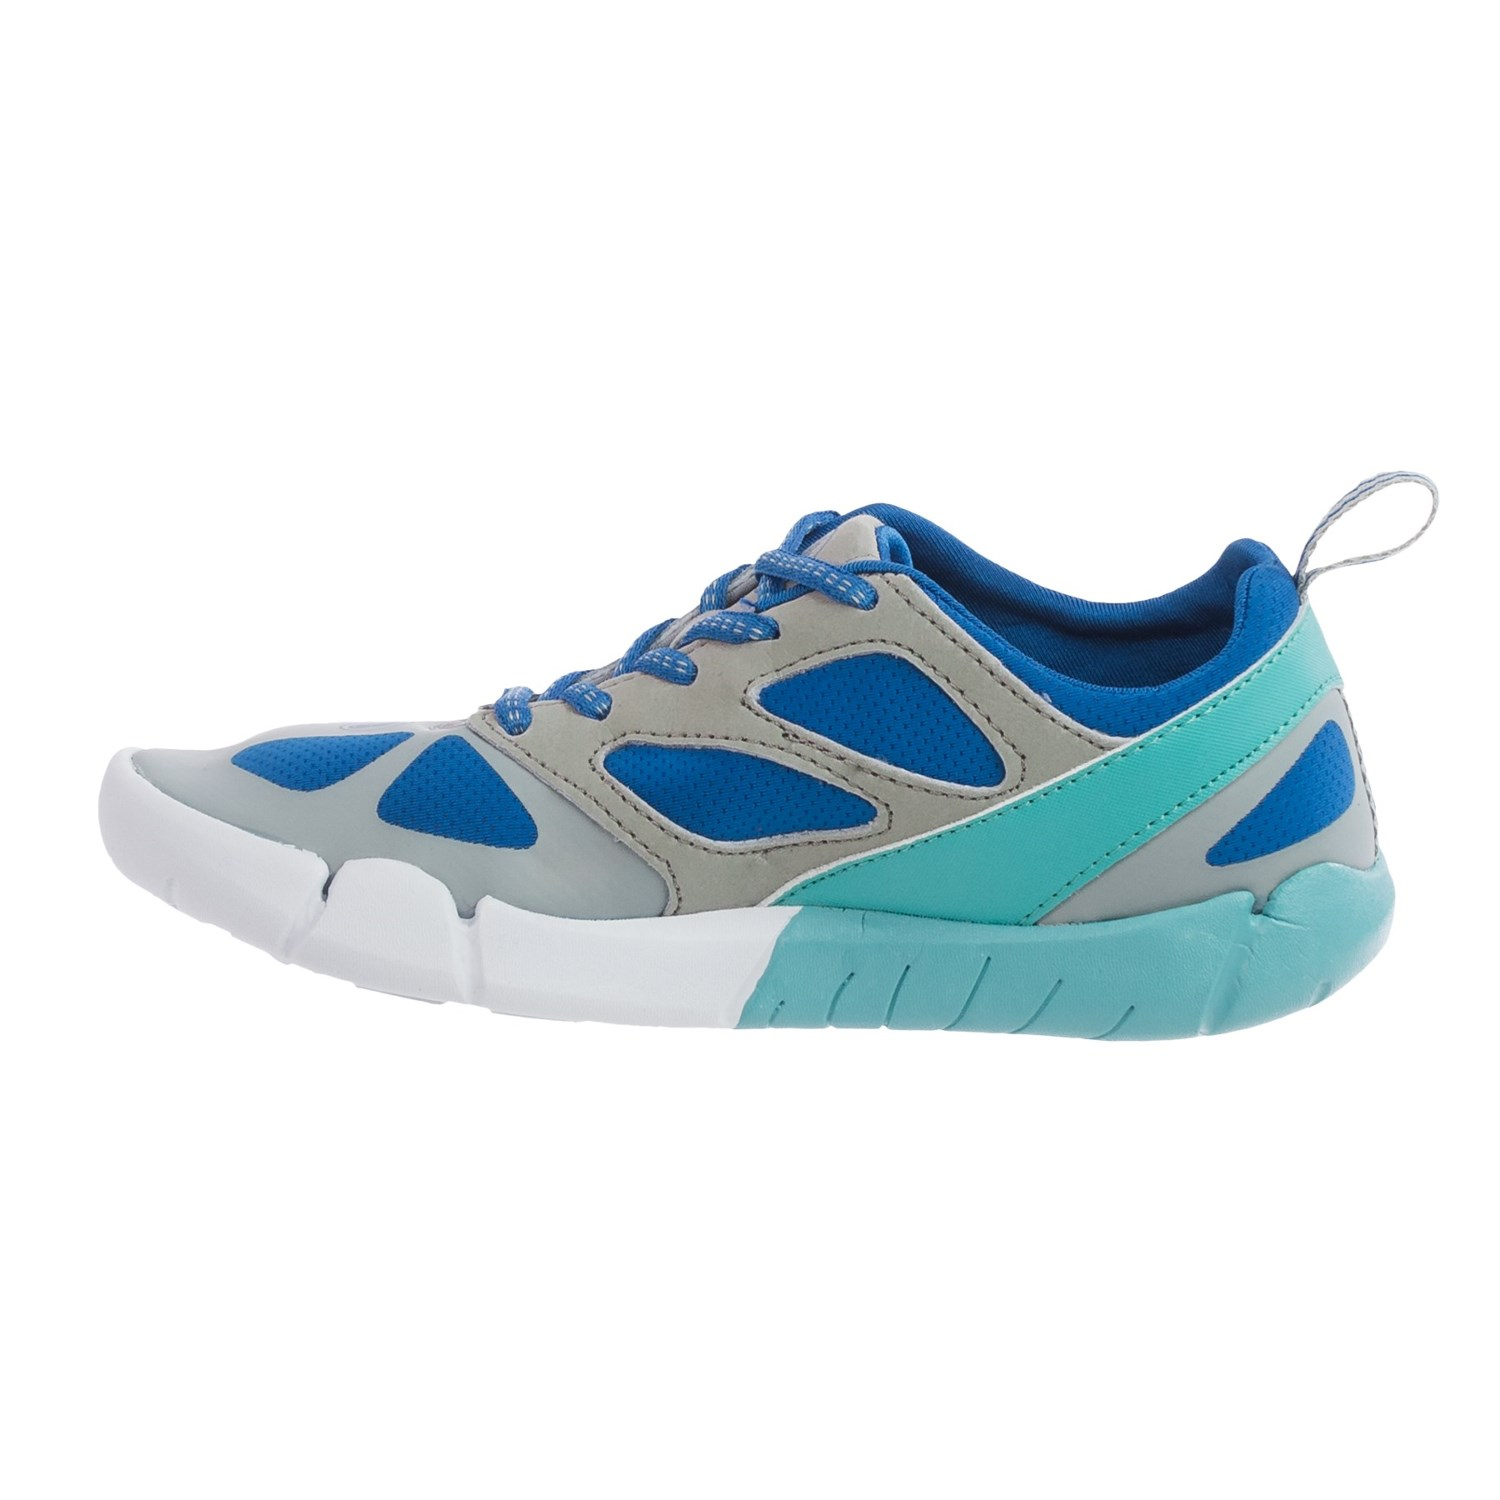 Body Glove Swoop Water Shoes (For Women) - Save 51%